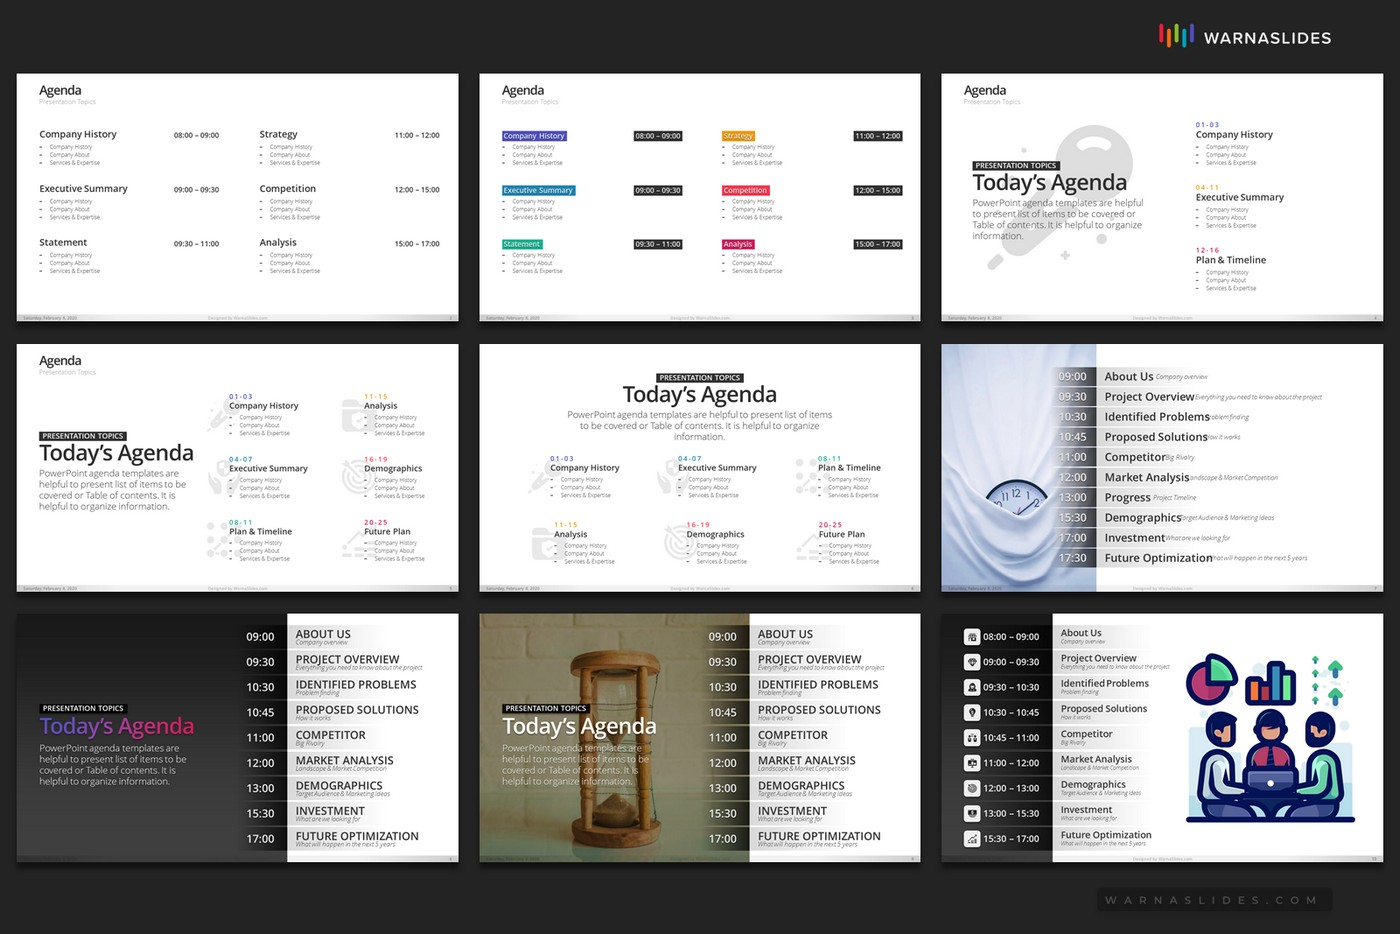 Agenda-Meeting-PowerPoint-Template-2020-for-Business-Pitch-Deck-Professional-Creative-Presentation-by-Warna-Slides-006